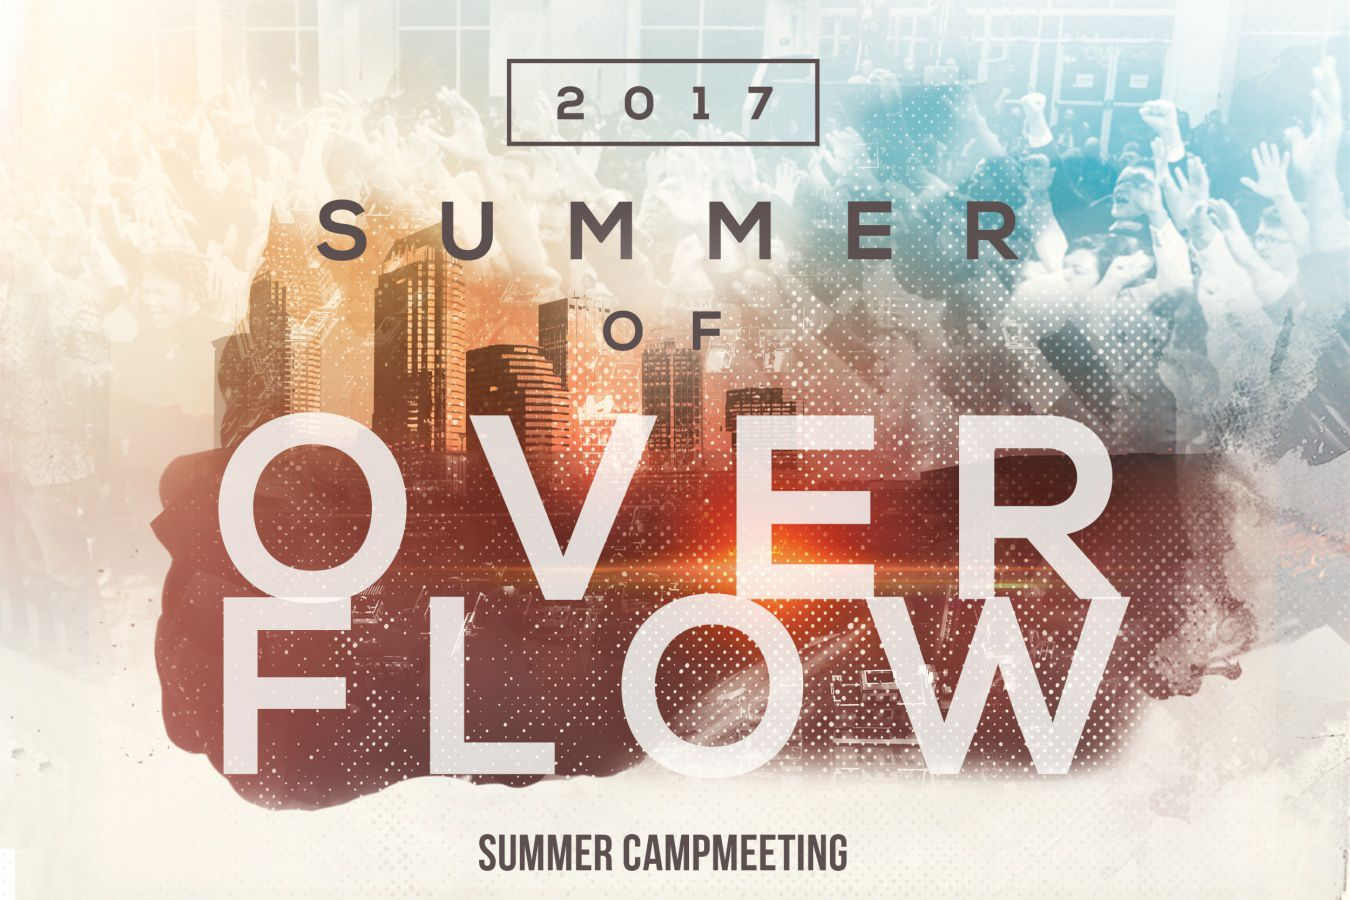 Summer Campmeeting